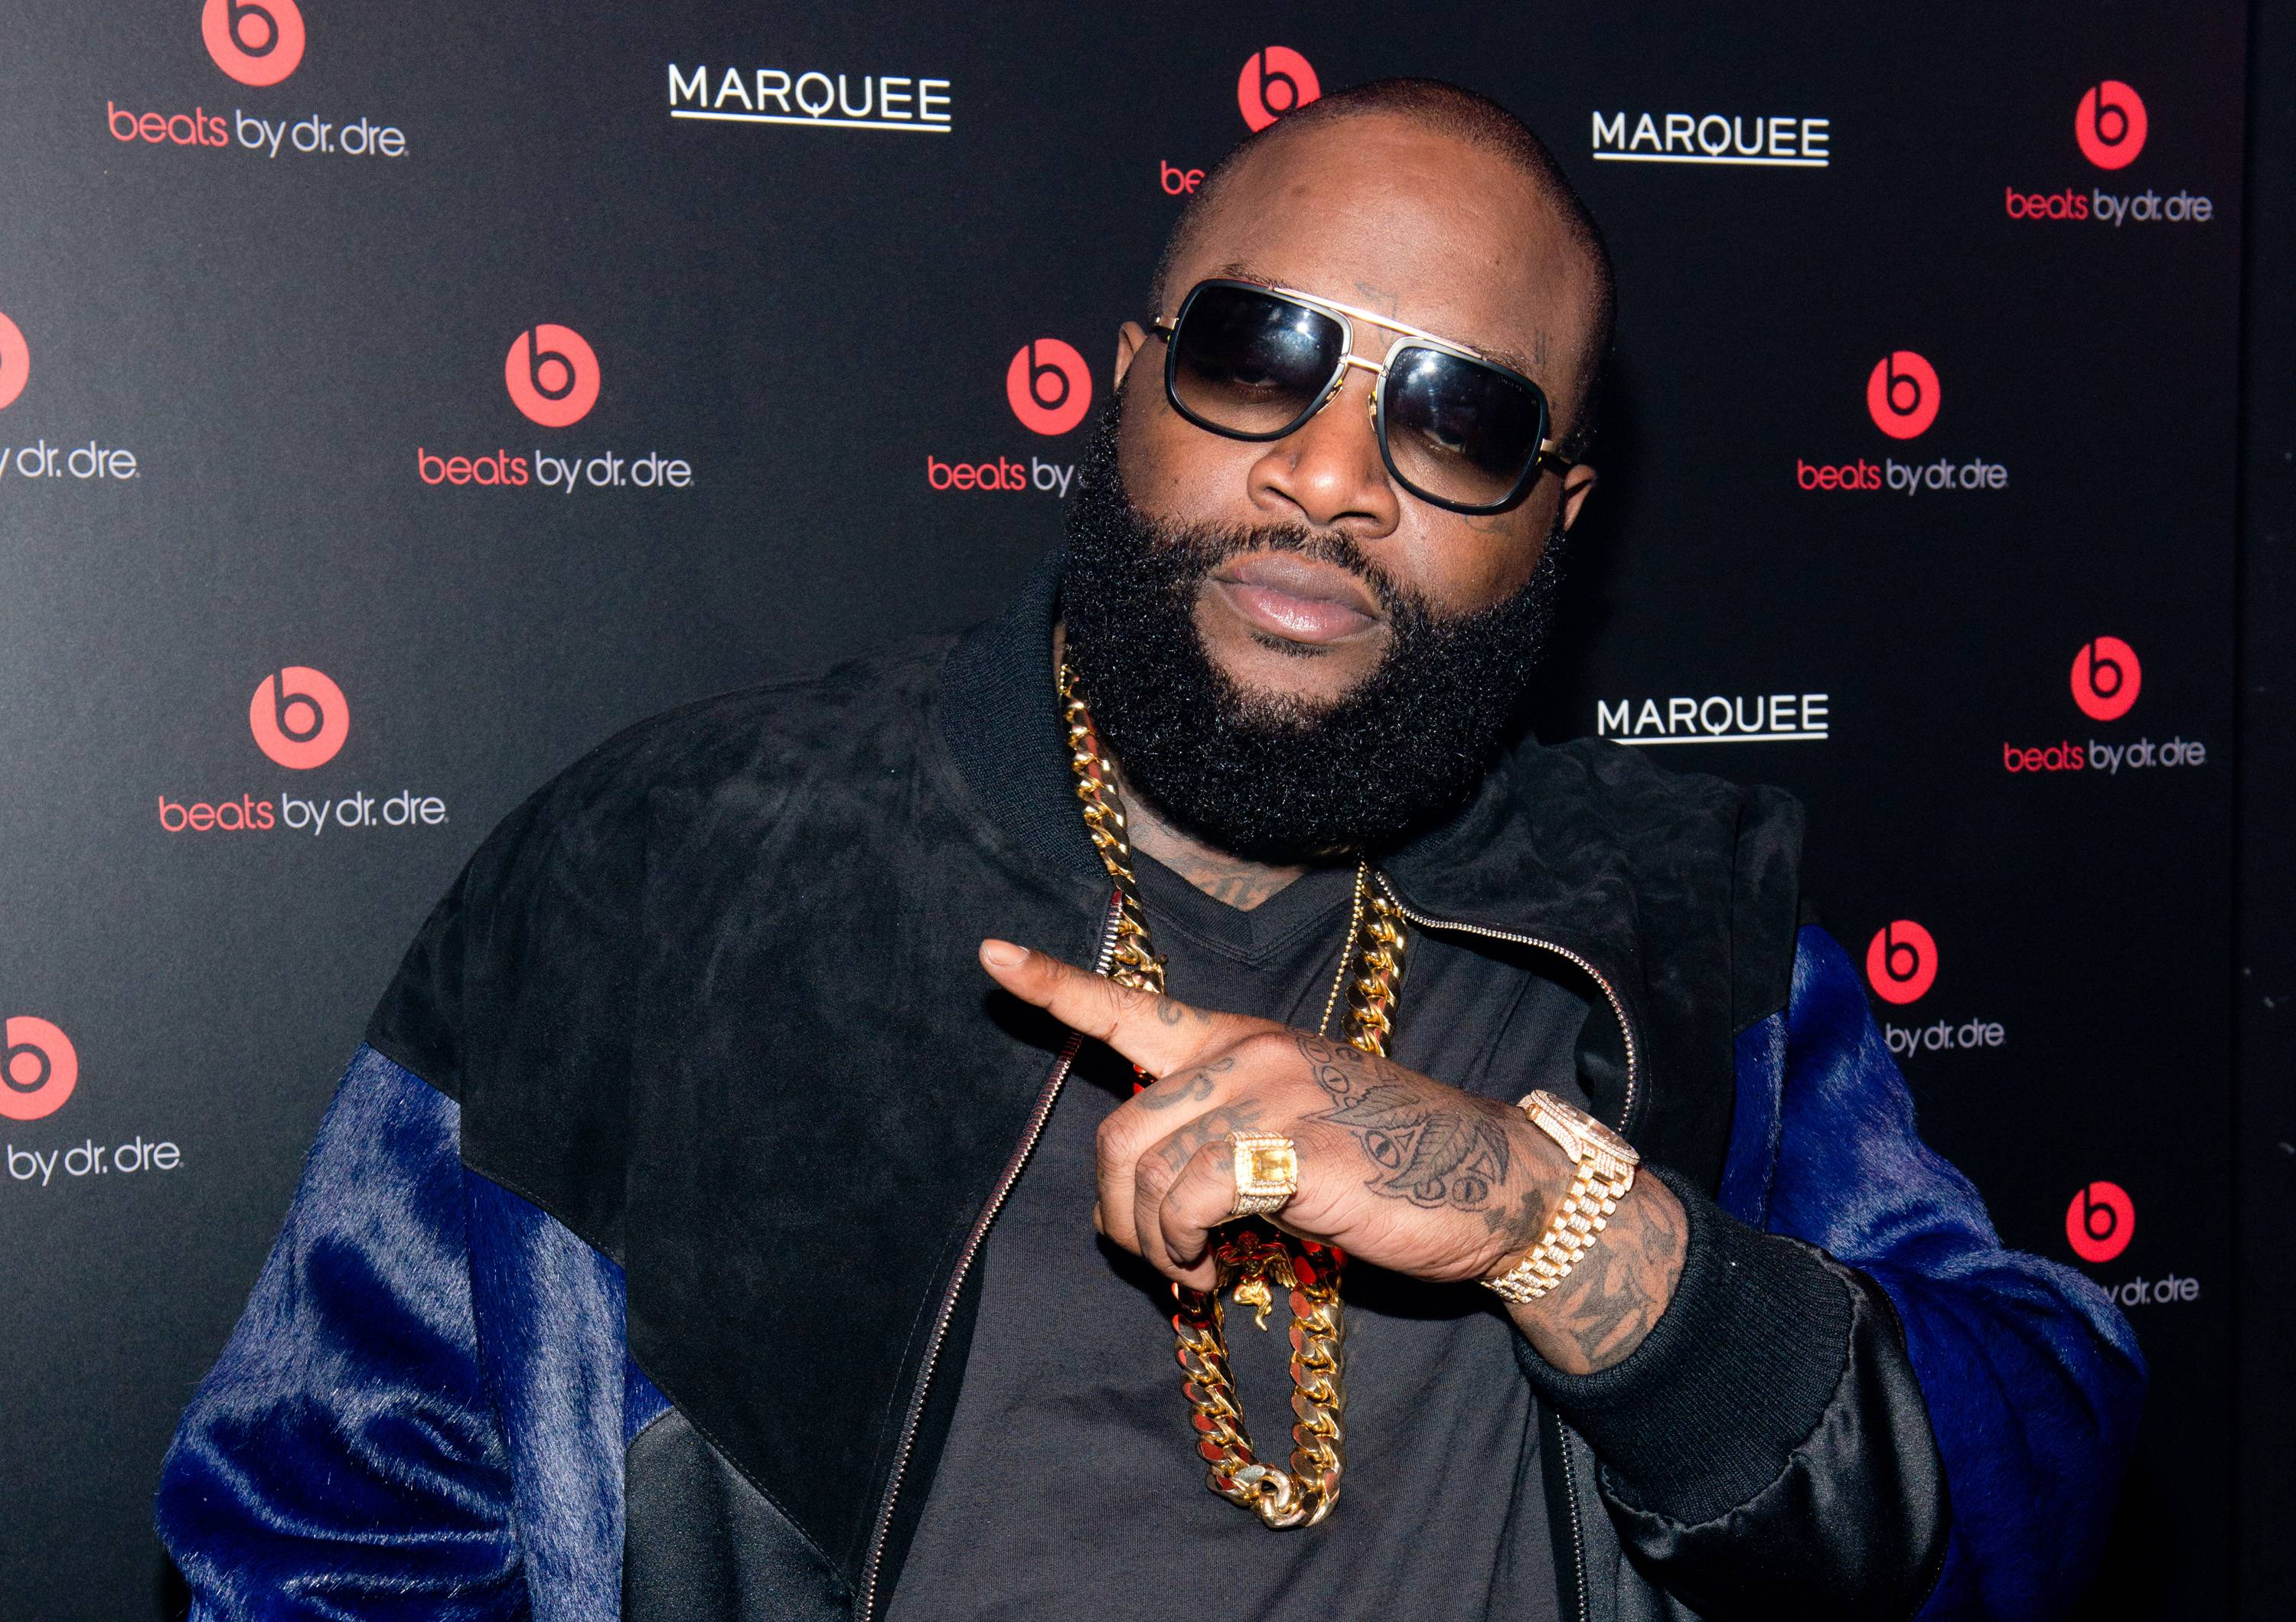 """Ross's Response - In a response to beef that goes back a few years, Rick Ross said:  """"We don't got time for that. Check the scoreboard: we running the numbers up high,"""" he said. """"Put the wigs on for us, [50], that's when we enjoyed it and we laughed. Put the wigs on, go back to that. Other than that, we gonna keep getting this money.""""  Hopefully this is the last we hear of this.  (Photo: Noam Galai/Getty Images for Beats by Dr. Dre)"""